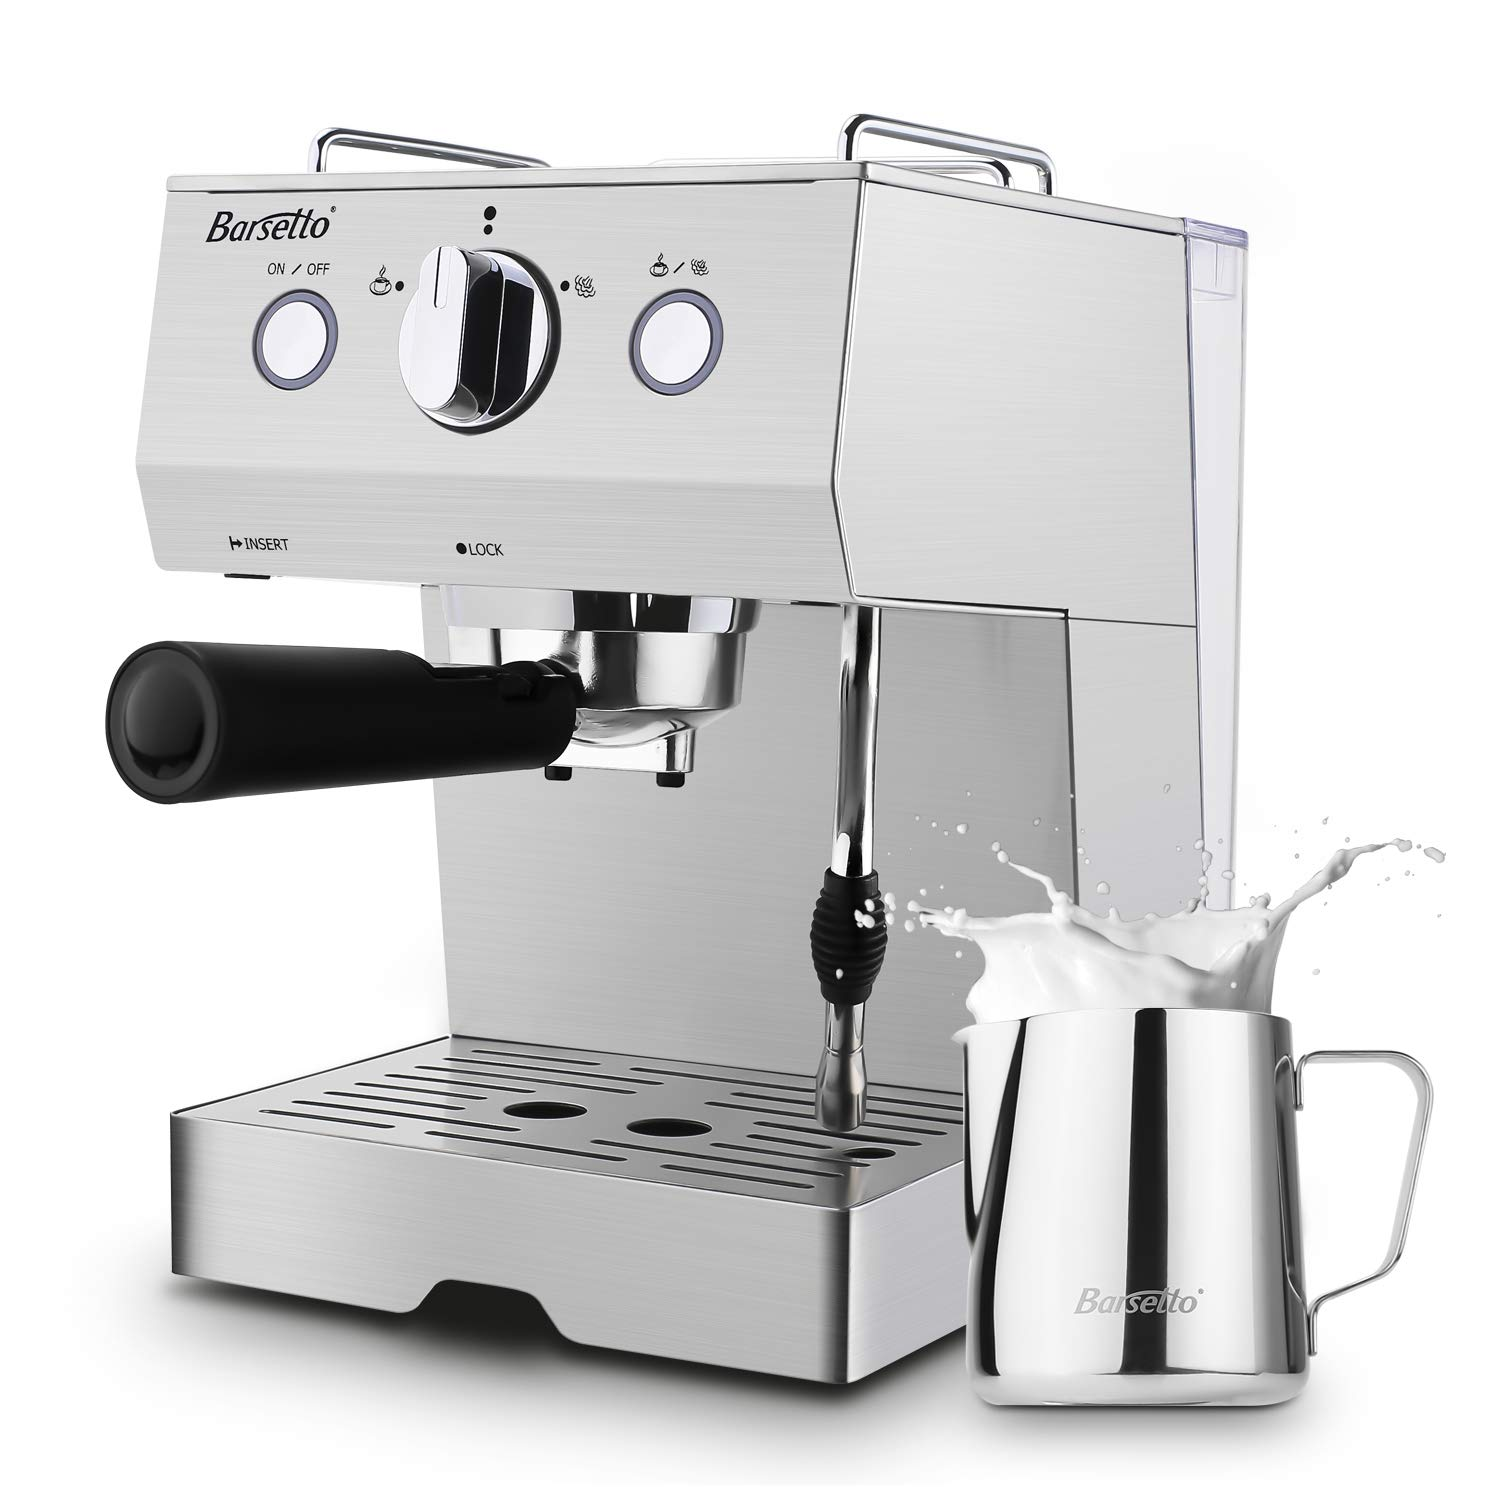 Espresso Machine Barsetto Coffee Machine 15 Bar Stainless Steel Coffee Brewer with Milk Frother Wand, Package w/Free Milk Frothing Pitcher, for Cappuccino, Latte and Mocha (Stainless Steel)